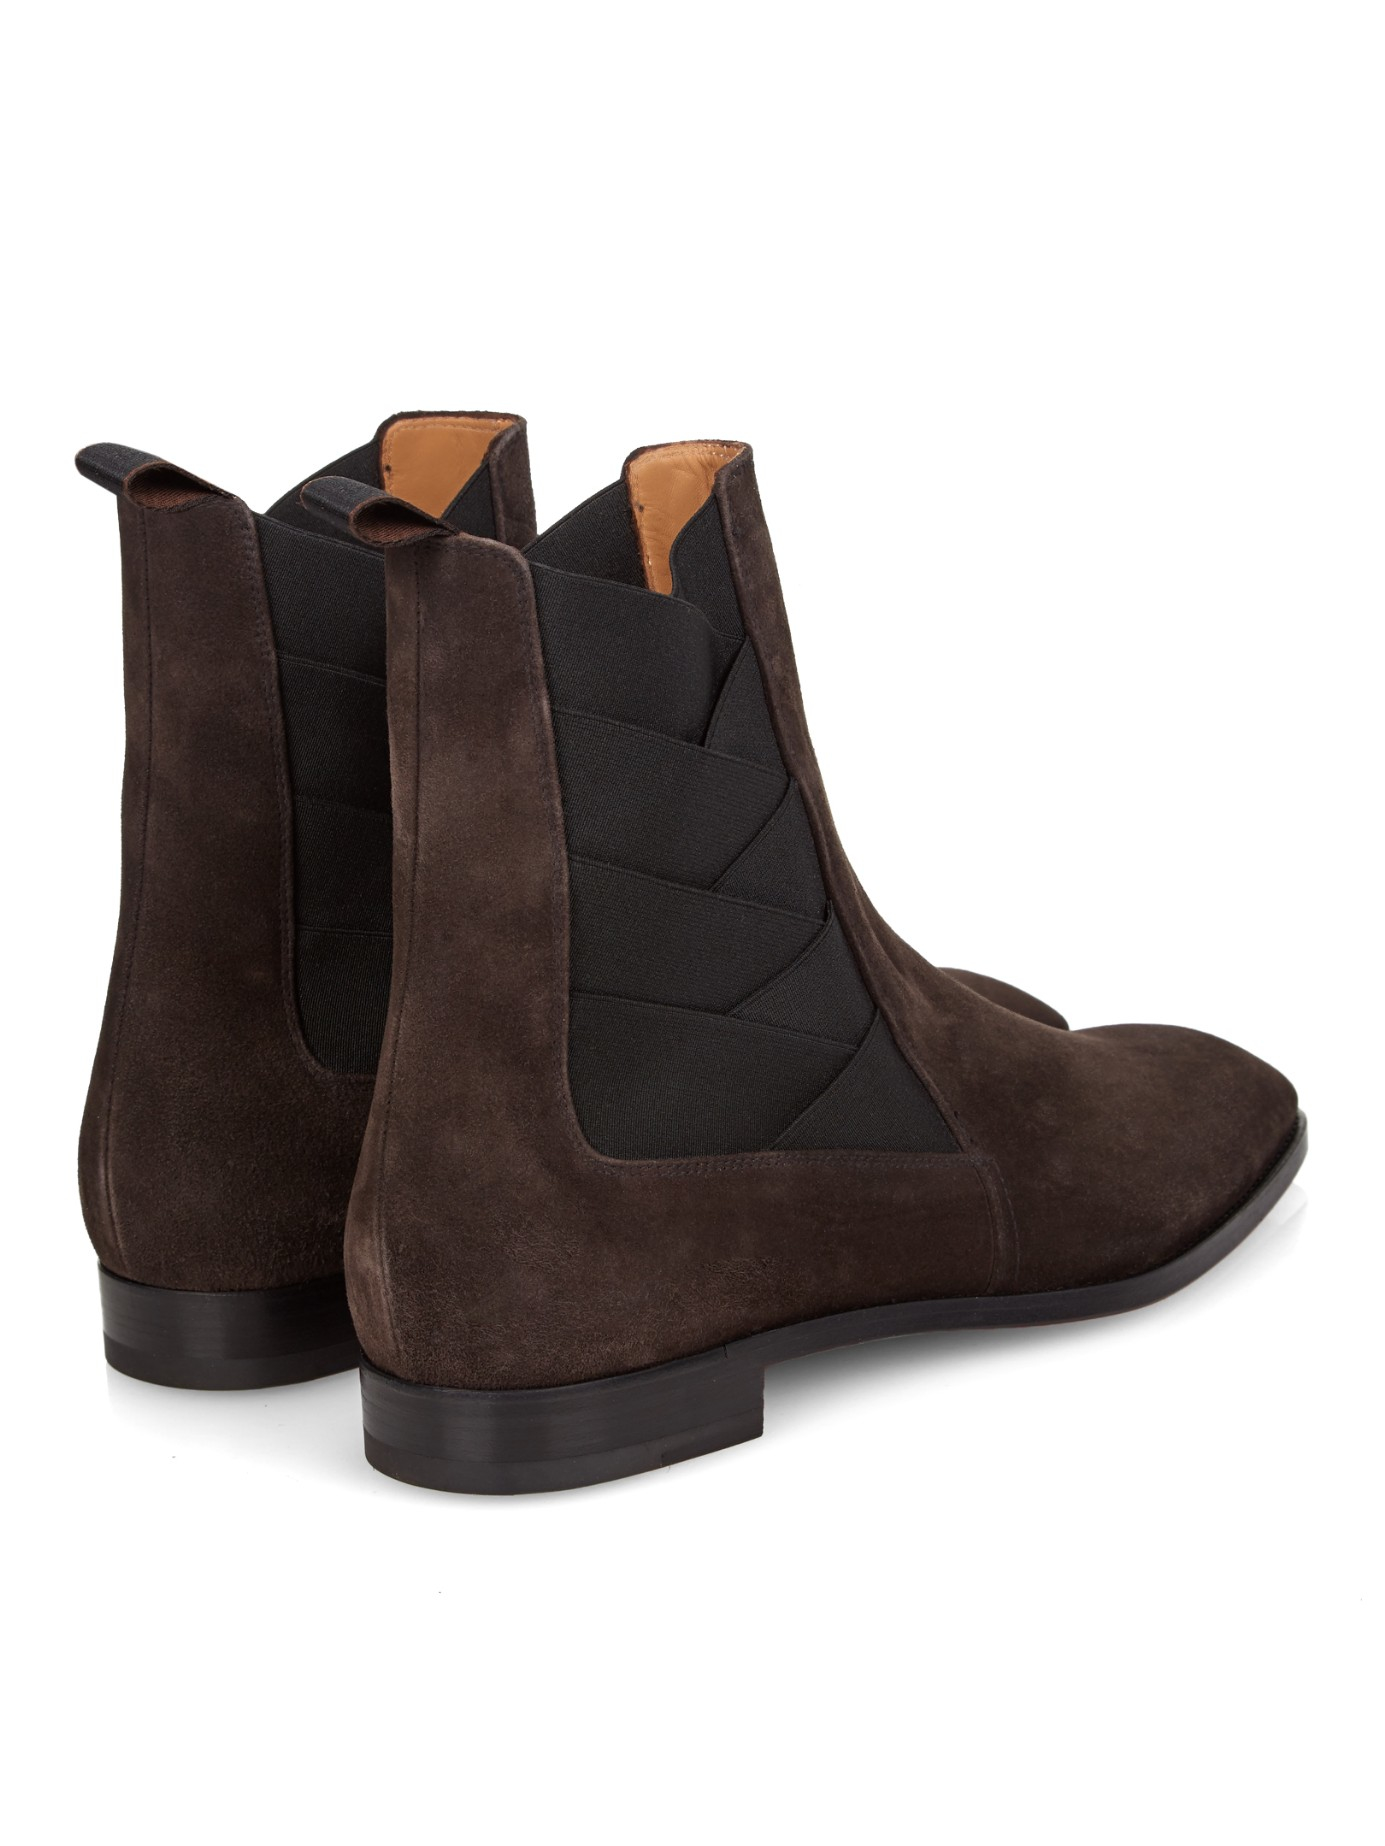 4ba5c480ec8a ... italy lyst christian louboutin brian suede ankle boots in brown for men  c8fd3 87d22